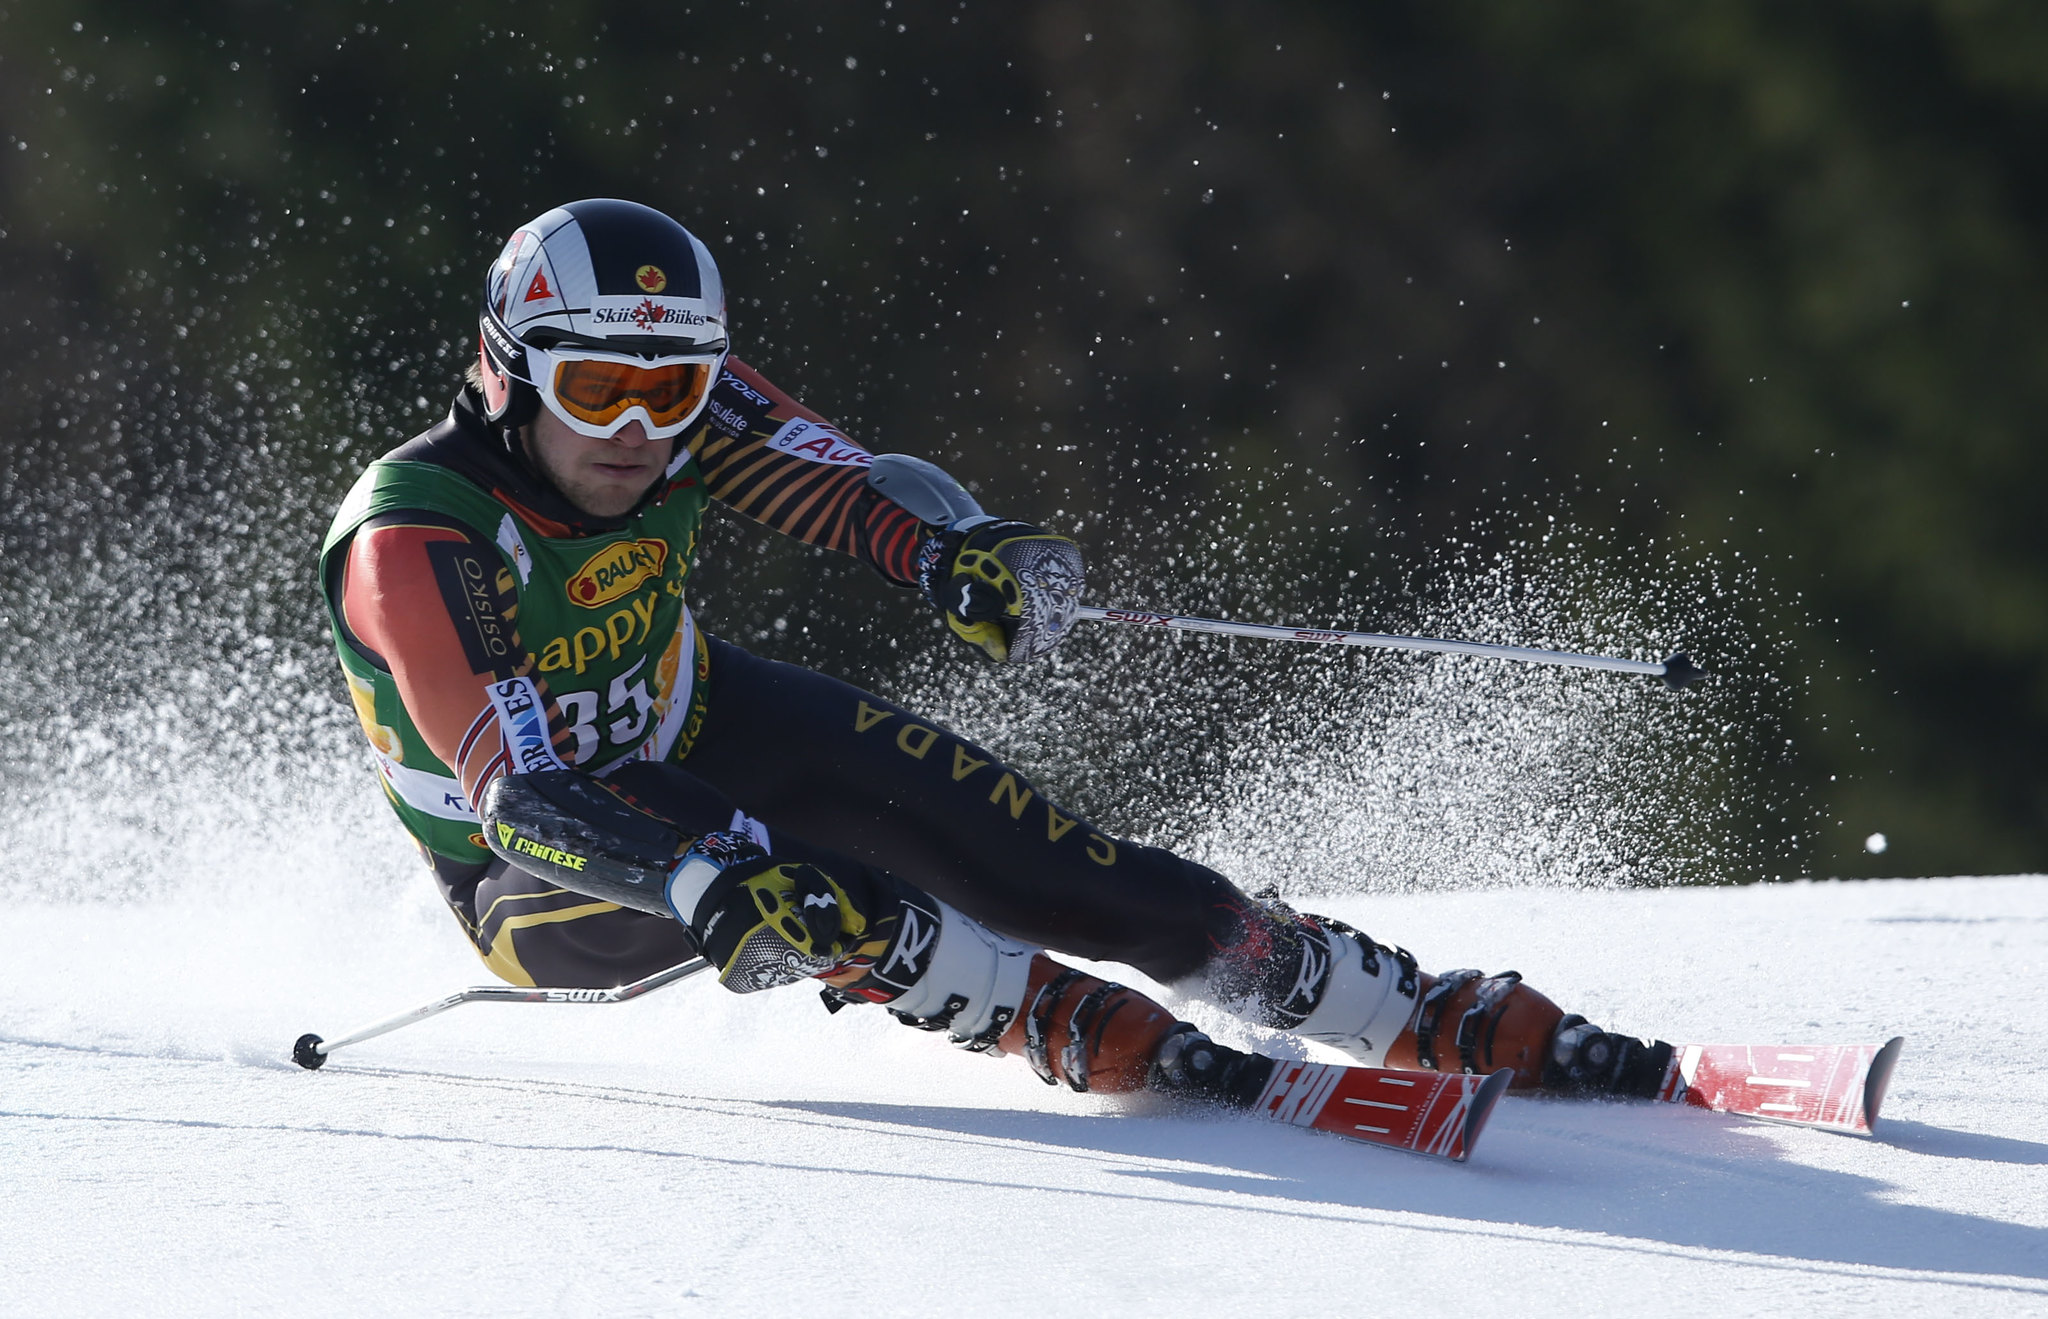 Philip Brown in action in Kranjska Gora, SLO during the giant slalom